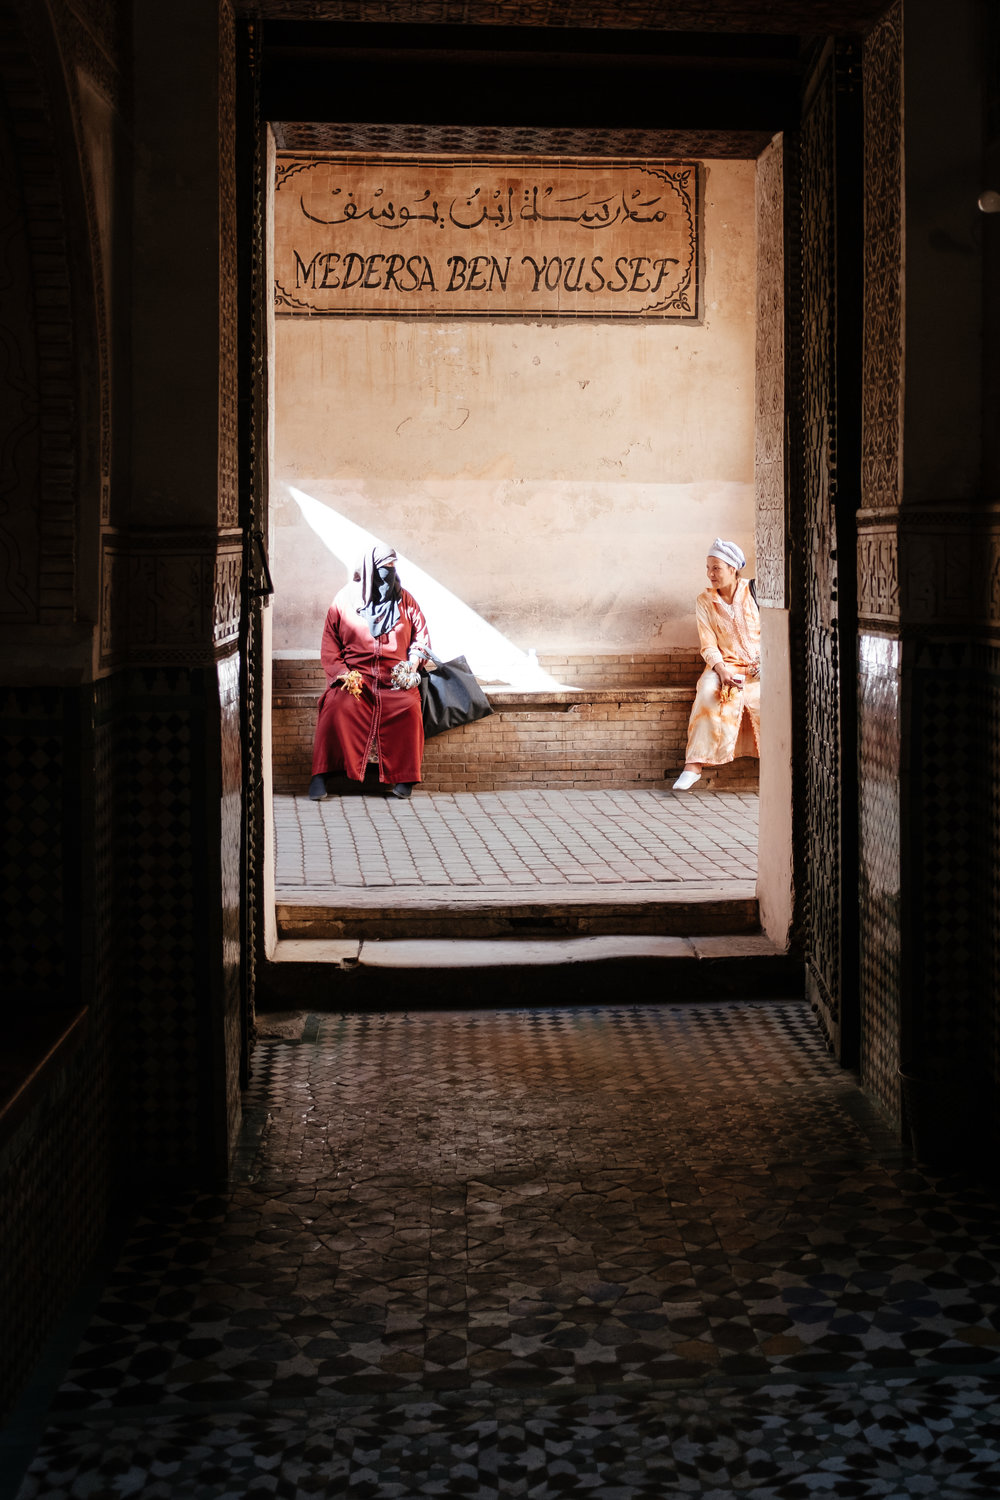 Marrakesh_BenYoussefMosque2.jpg